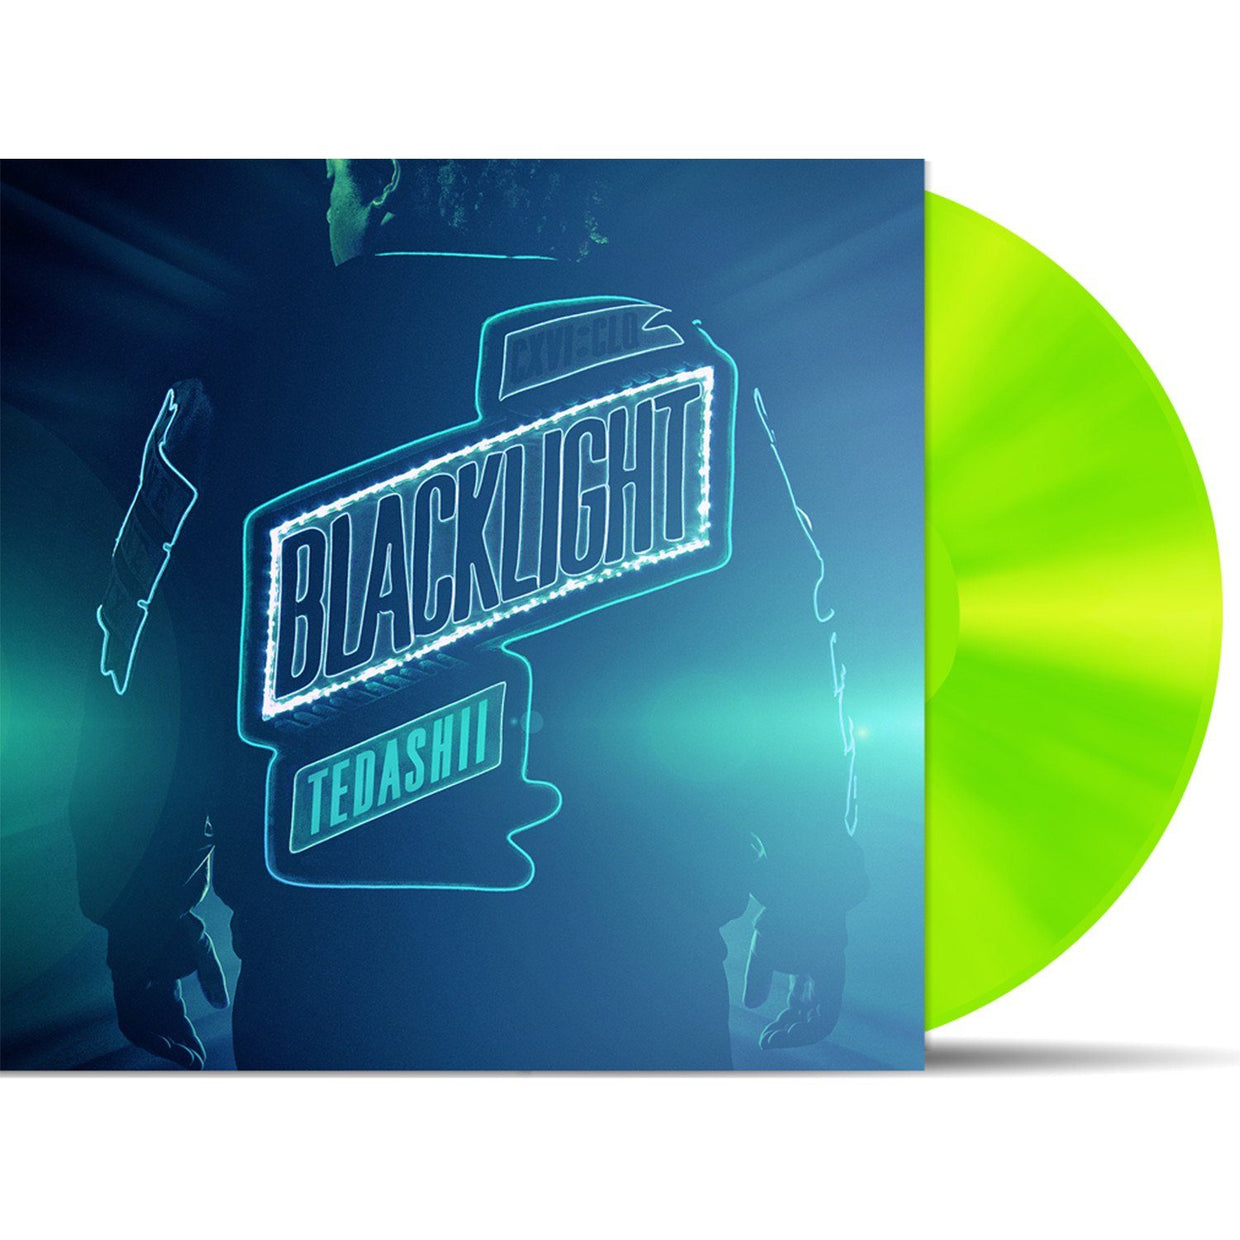 Reach Records Tedashii 'Blacklight' vinyl